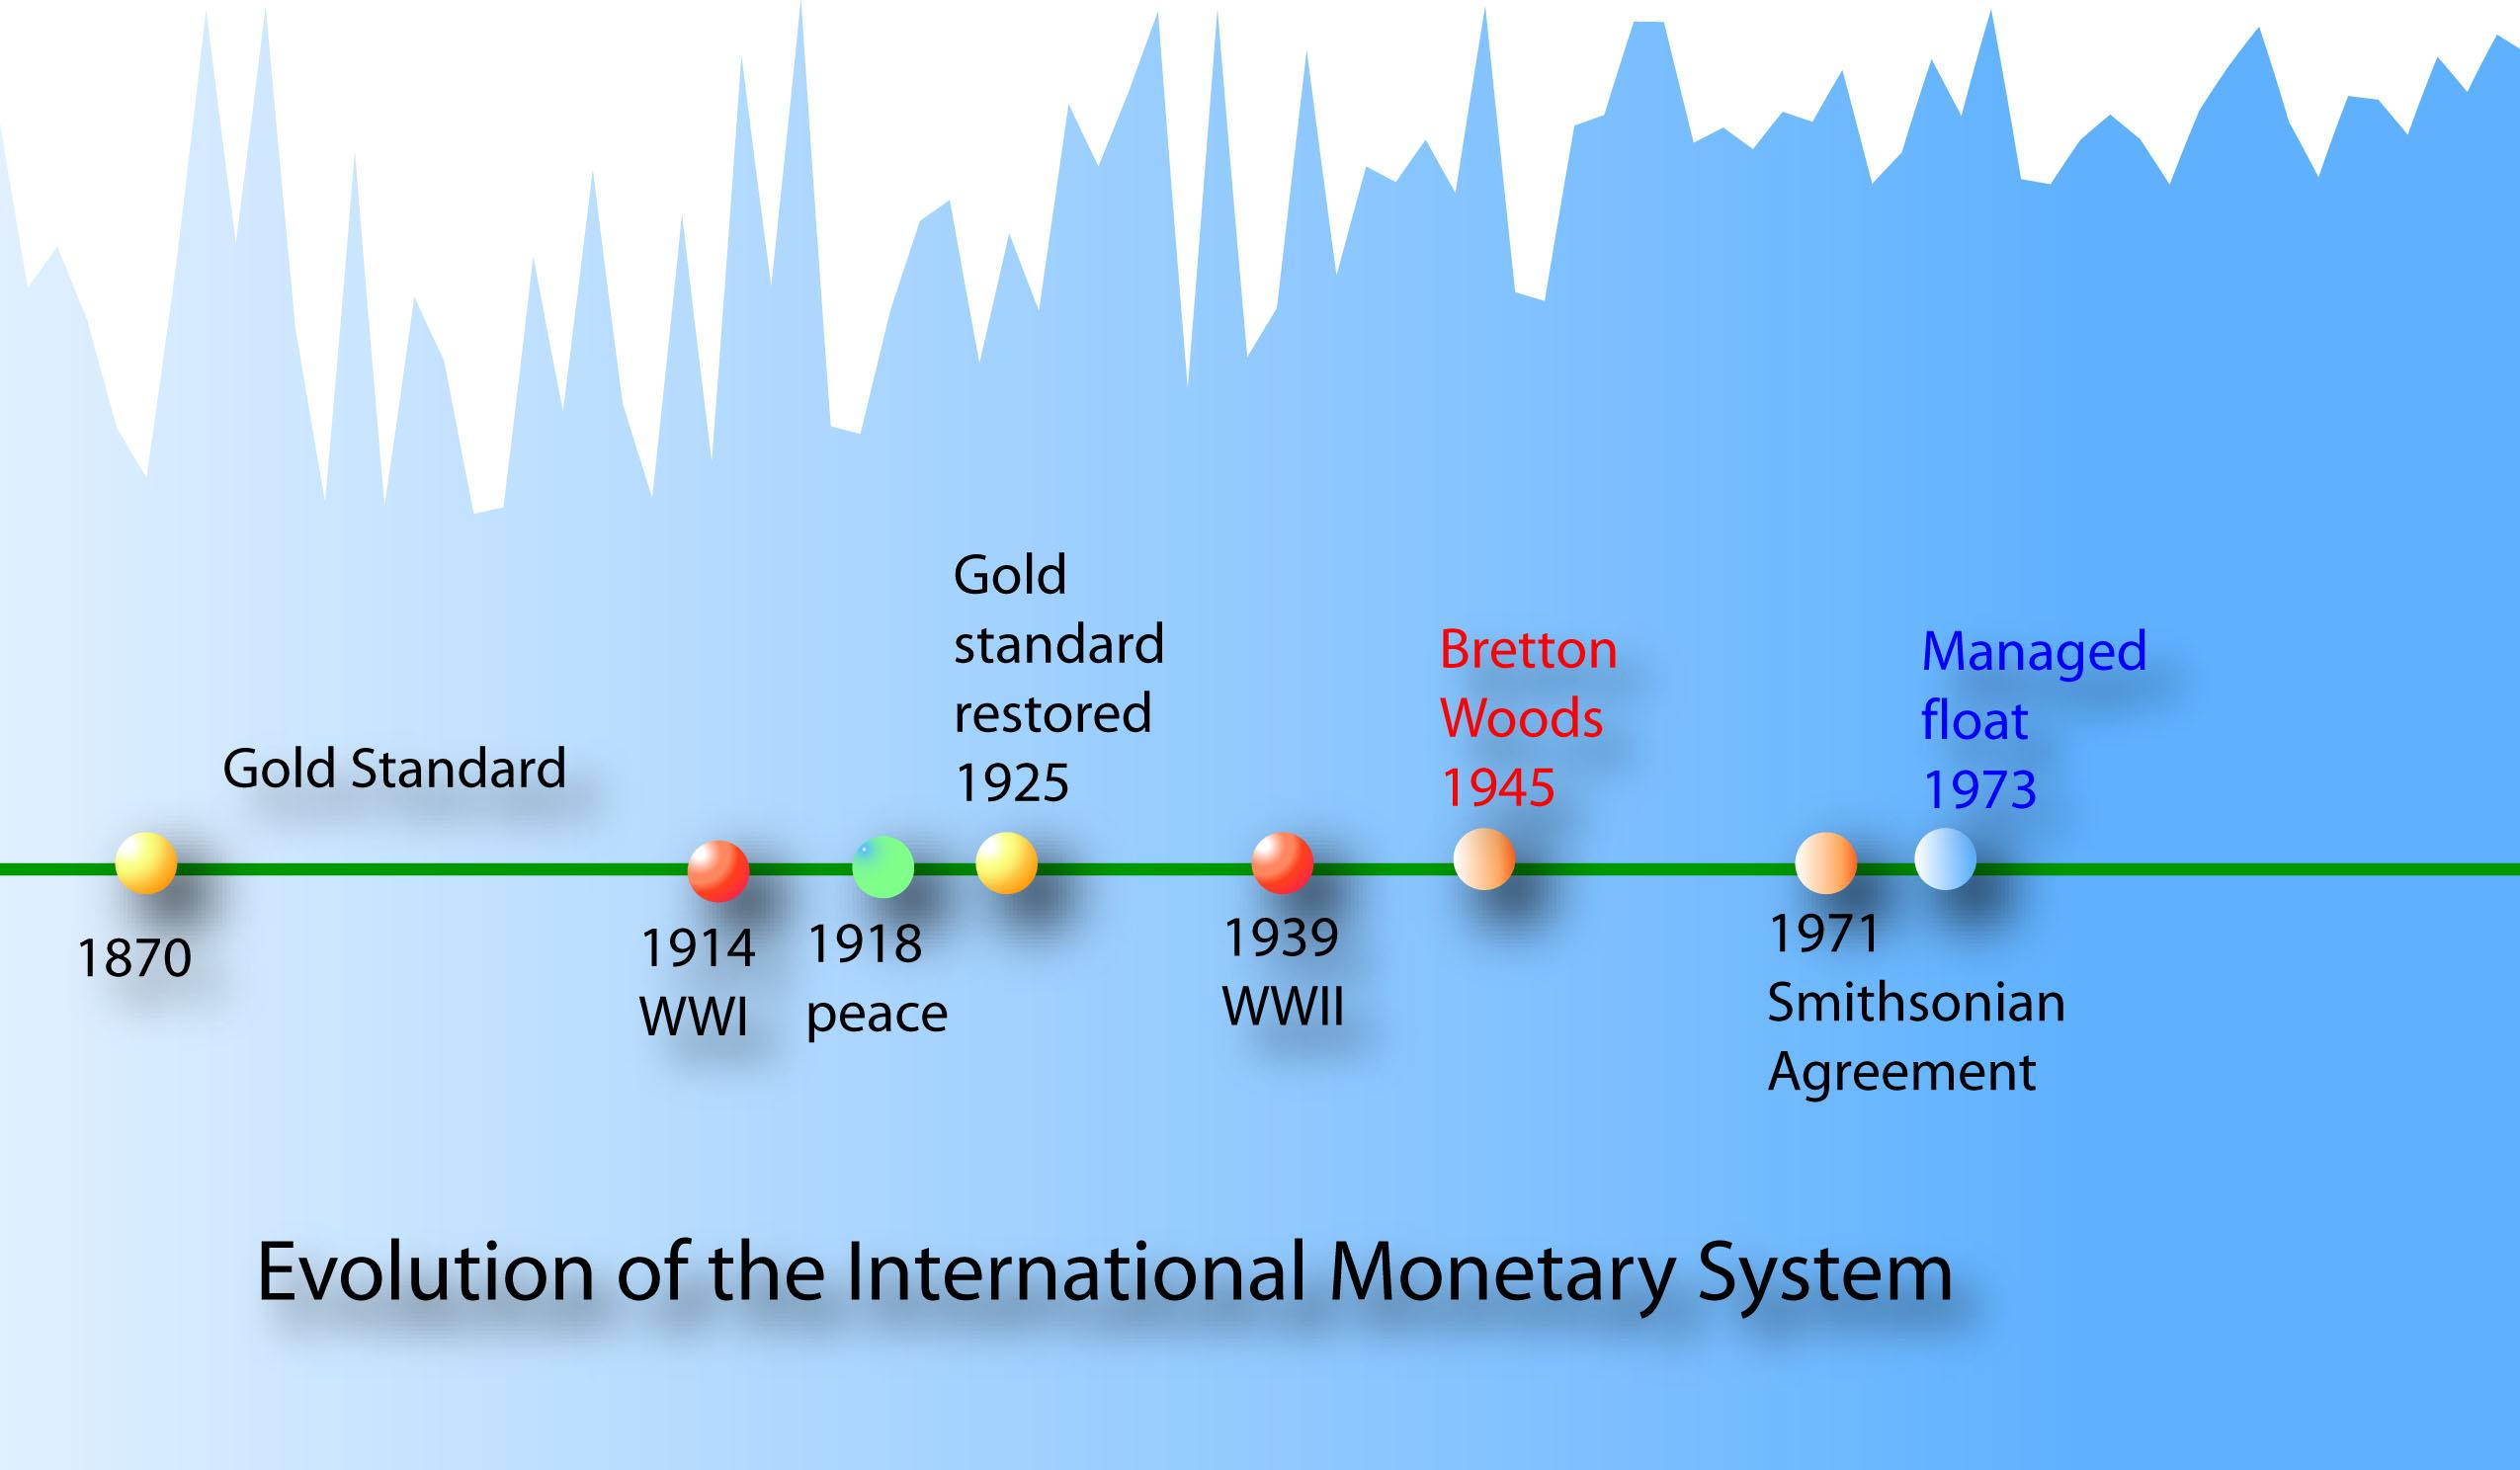 Bretton woods system diagram free download wiring diagram killing 2 currencies with 1 pen bitcoin services inc otcmkts furthermore gold is not unique and there are reasons why it will always be a failed currency platinumwayz